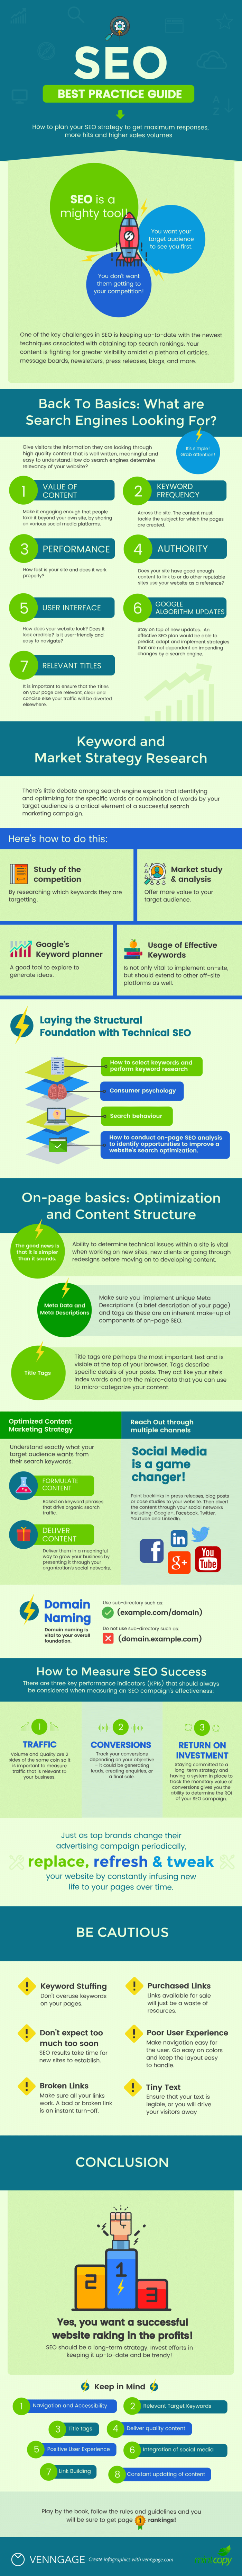 SEO Tips Infographic Template